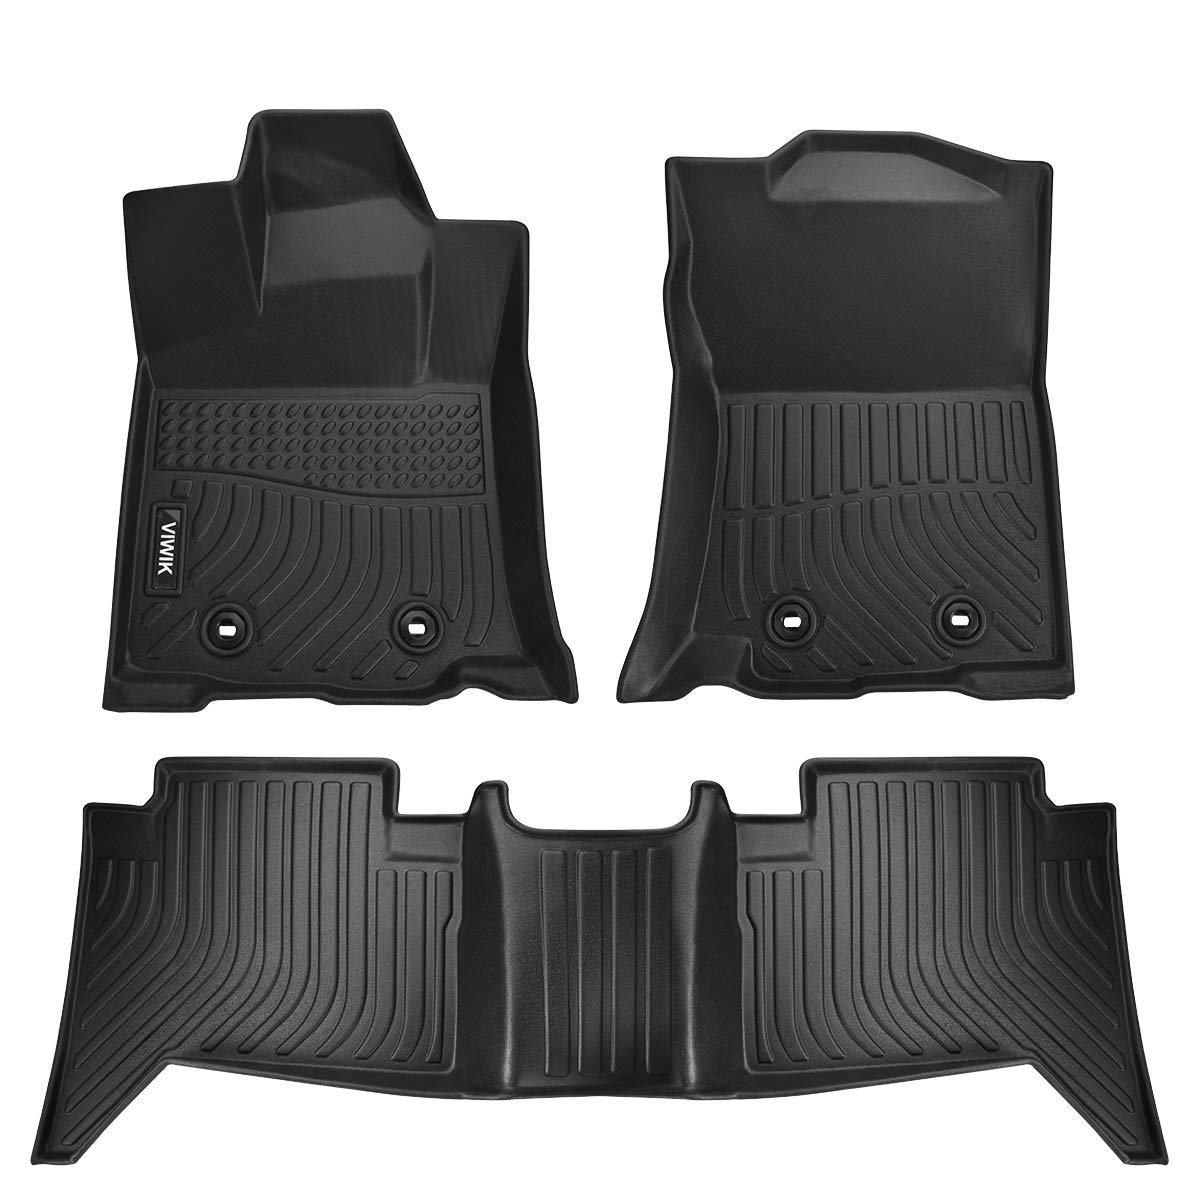 VIWIK Floor Mats for 2018-2020 Toyota Tacoma Double Cab, TPE Front and Rear Floor Liner Set for Toyota Tacoma, Tough, Durable and Eco-Friendly, 100% Safe